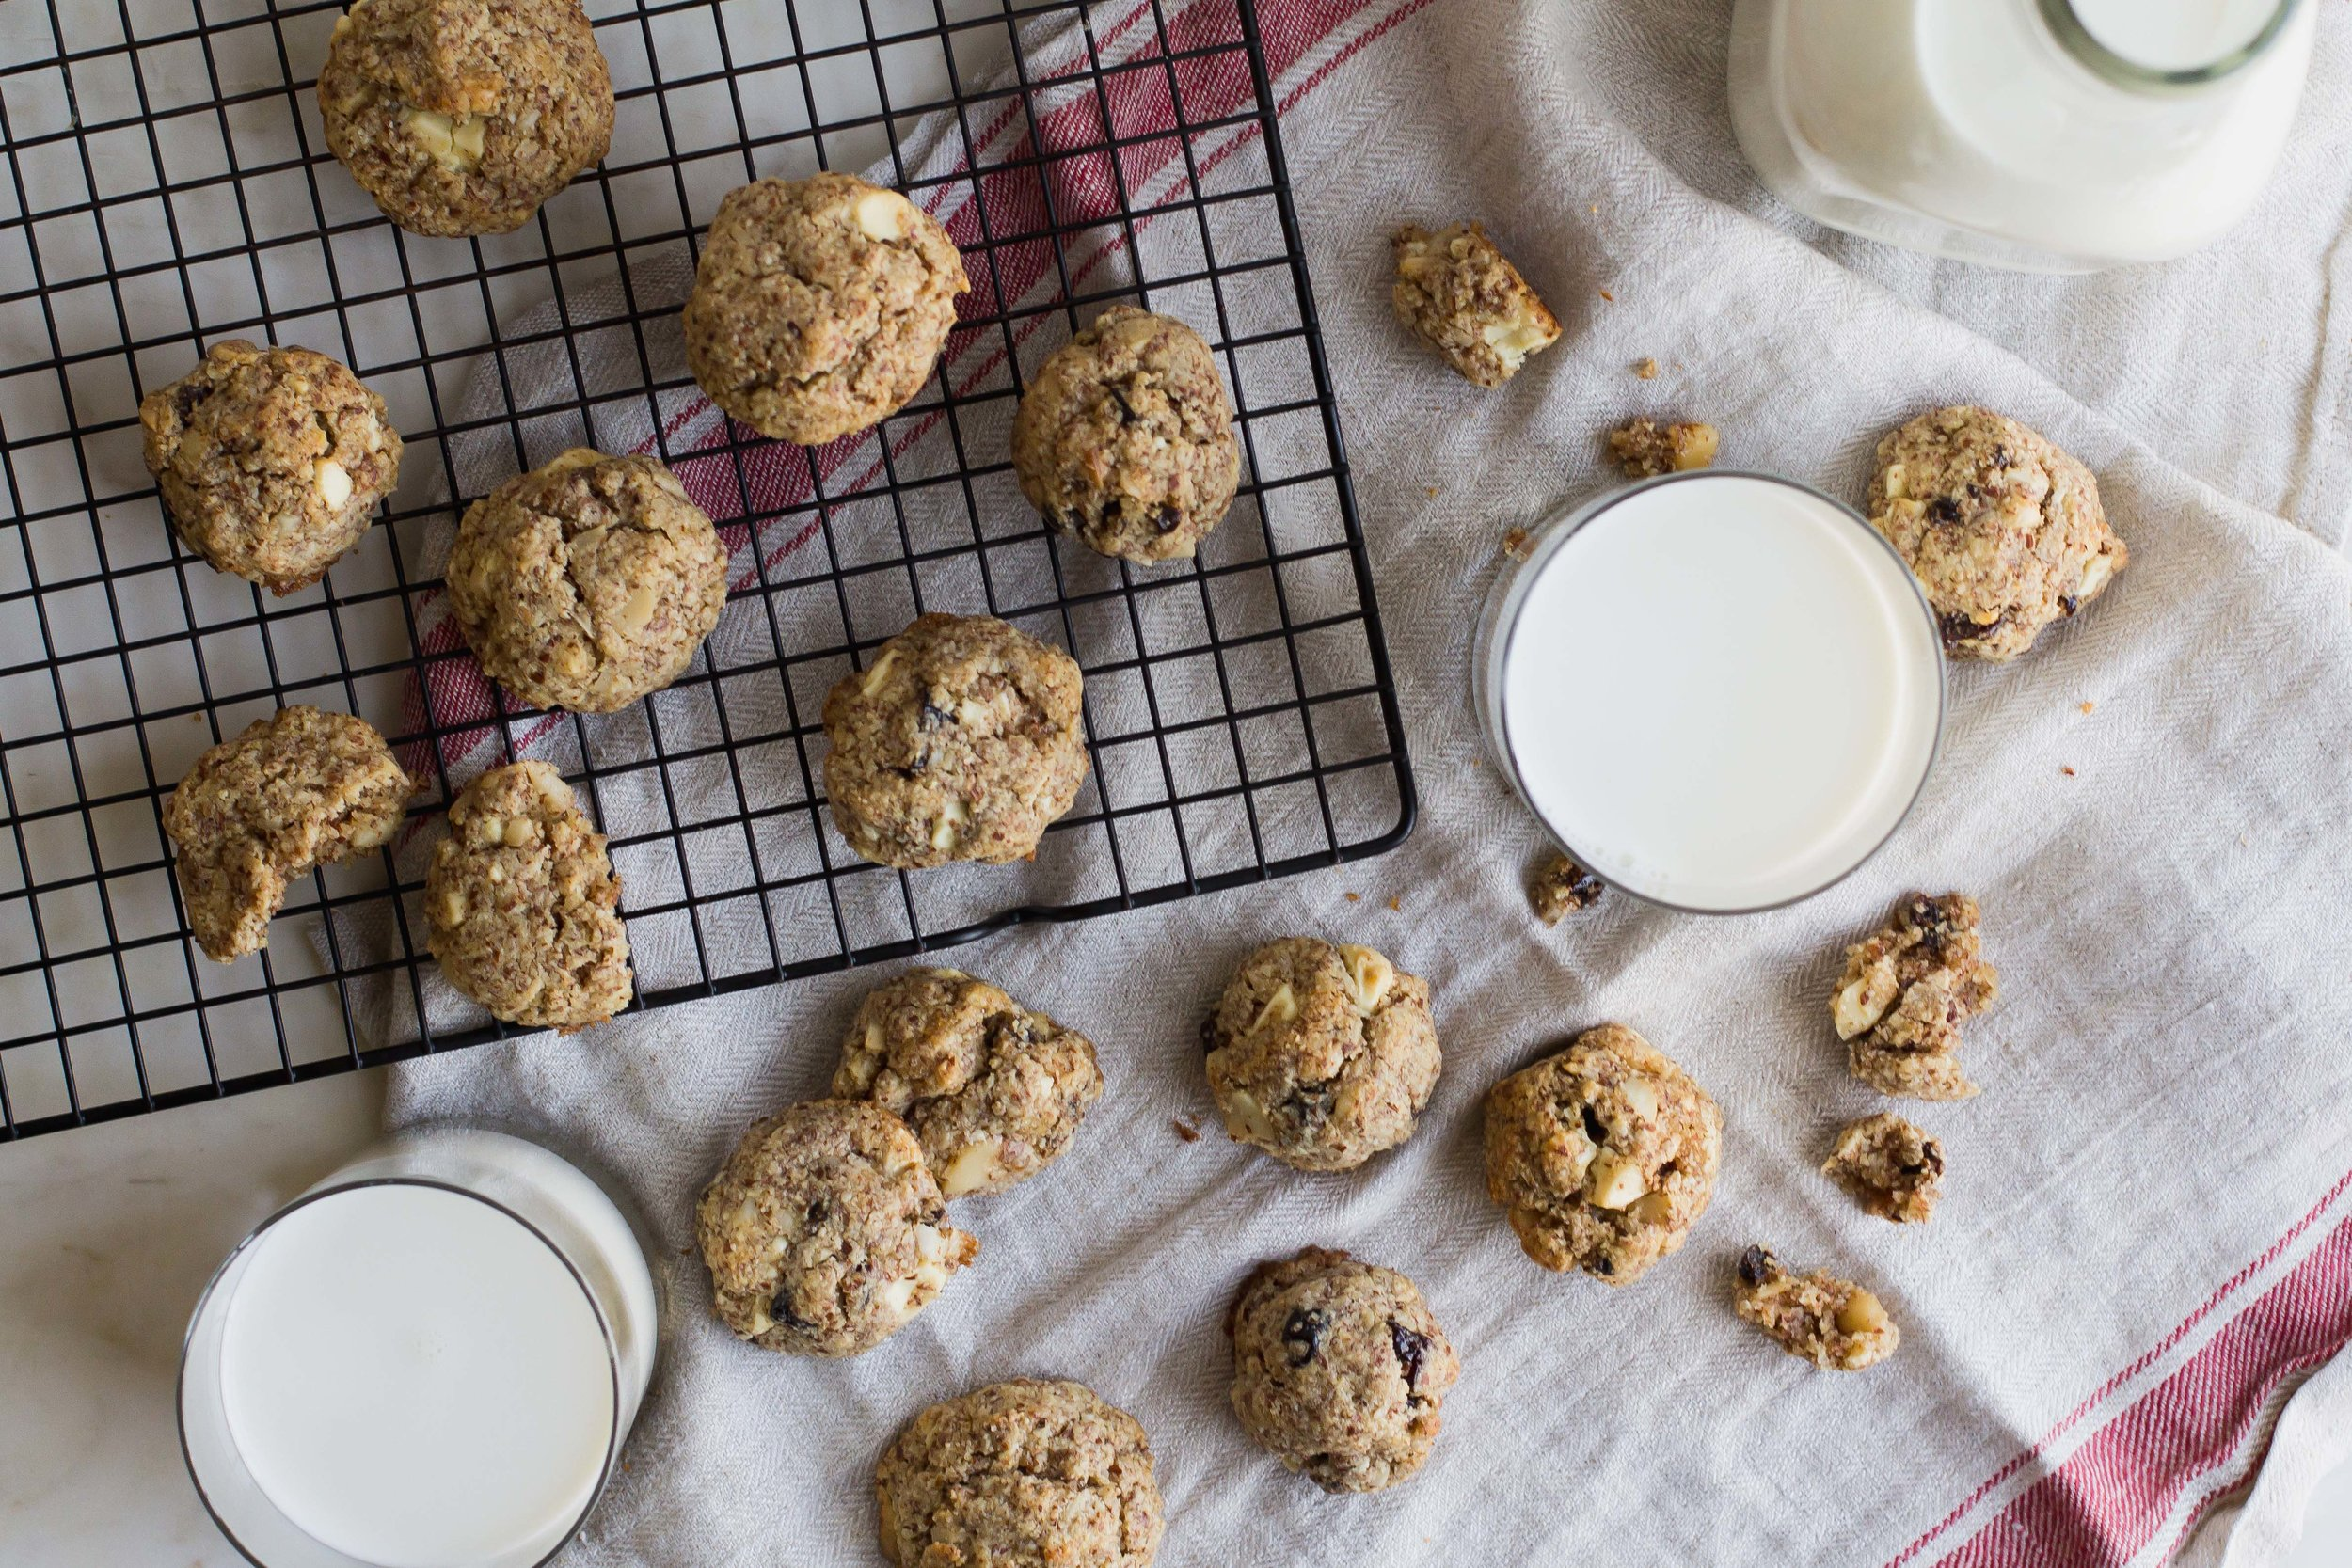 White Chocolate + Macadamia Almond Meal Cookies (Gluten Free!) | Sarah J. Hauser #cookies #glutenfree #almond #whitechocolate